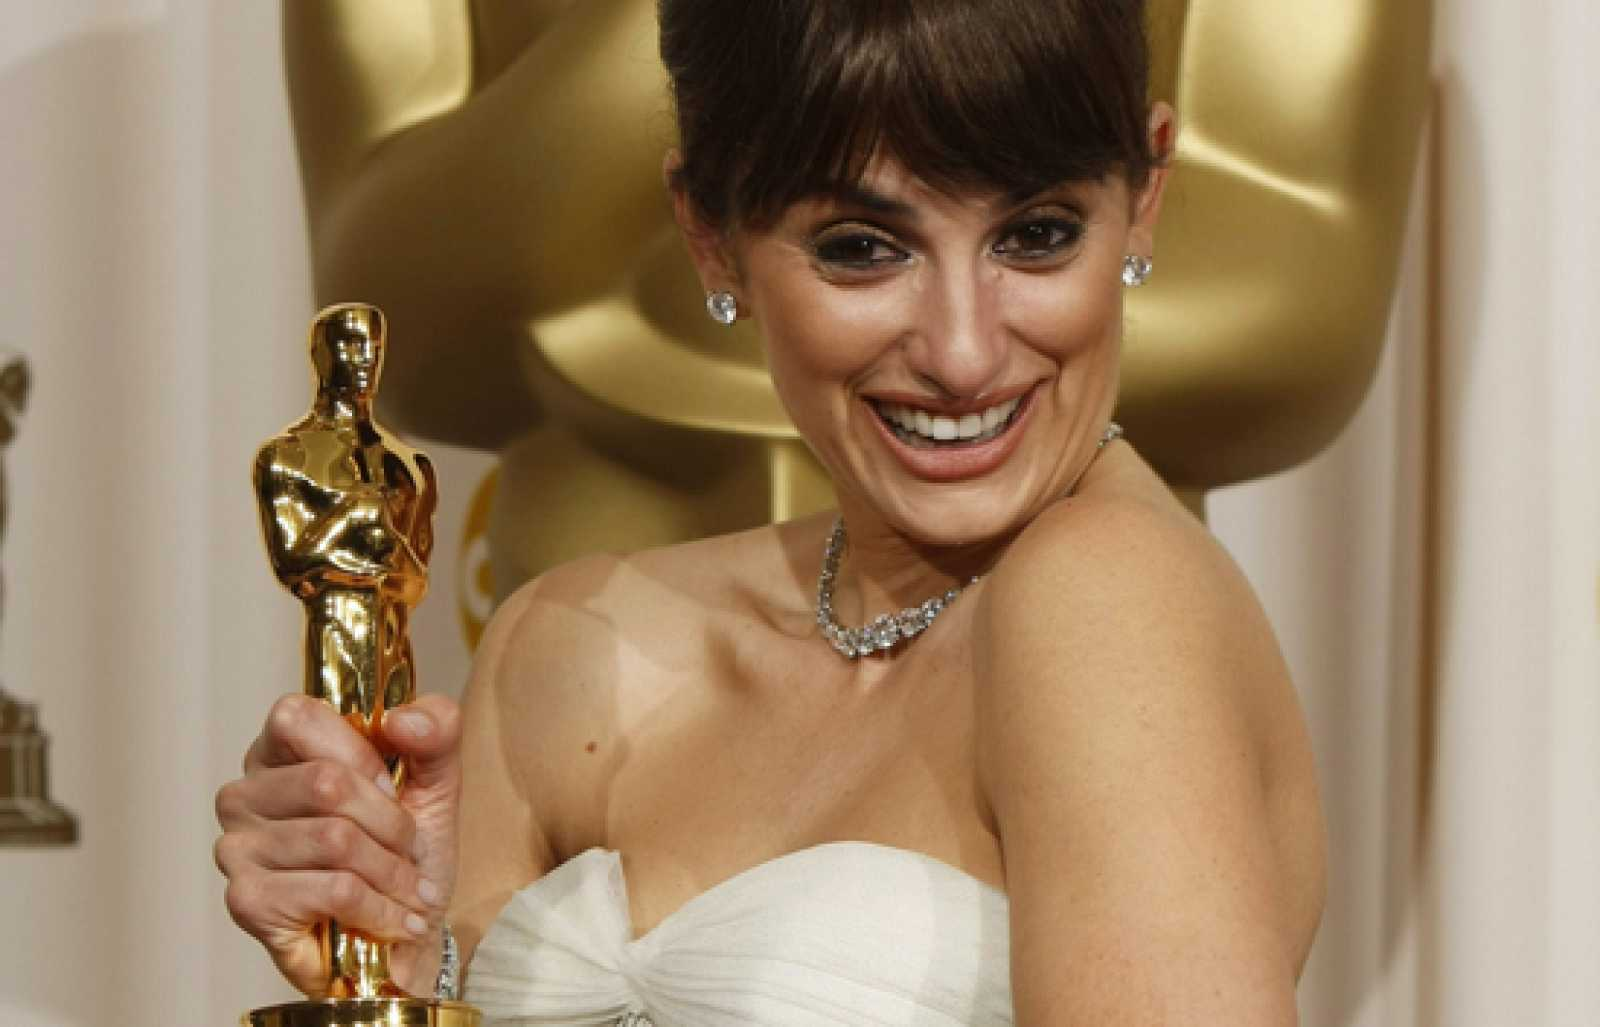 And the Oscar goes to... Penélope Cruz!!